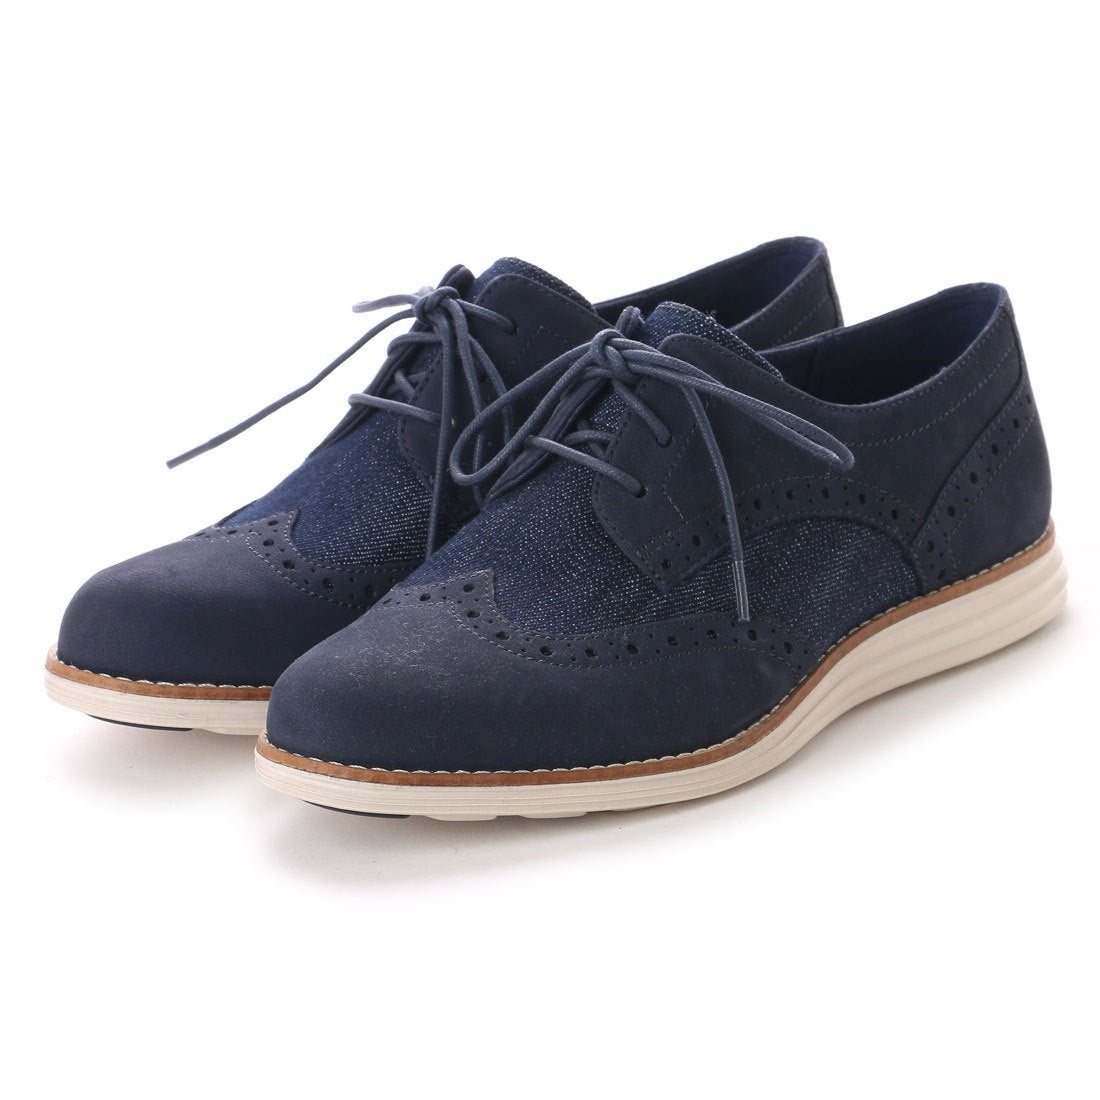 【SALE 40%OFF】コール ハーン COLE HAAN ORIGINAL GRAND WTIP (NVY INK/DNM/FG) レディース